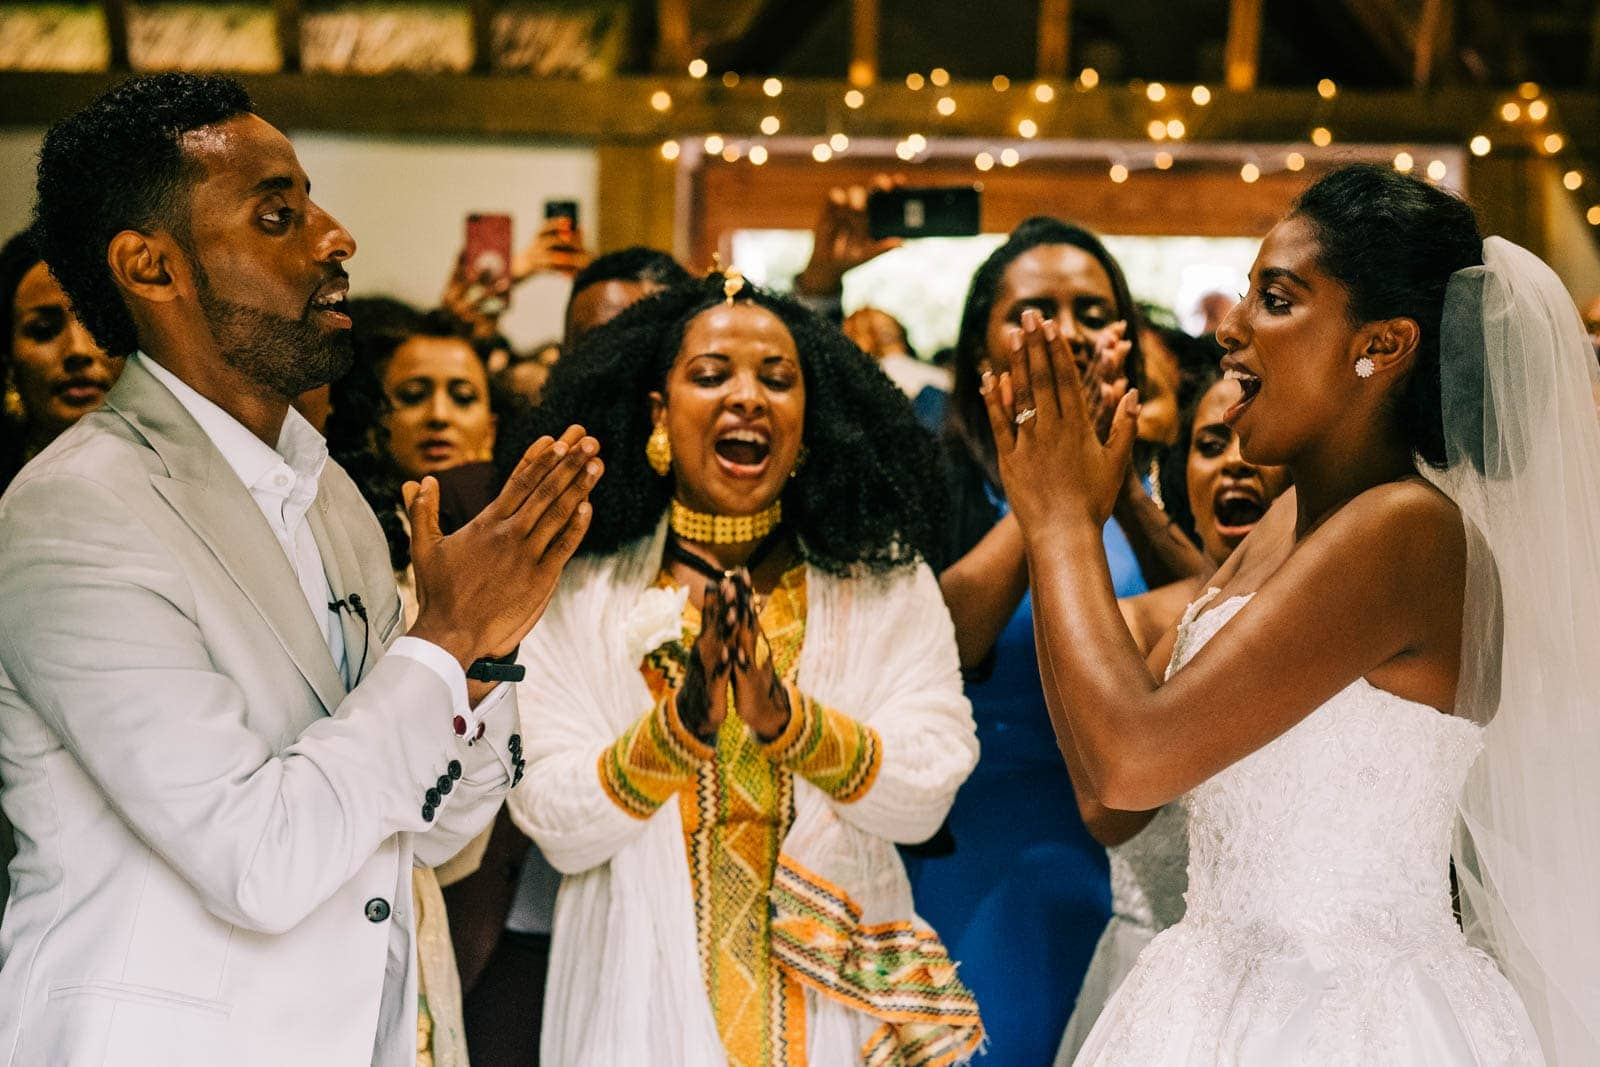 The wedding party celebrate during the ceremony with a Ethiopian dance